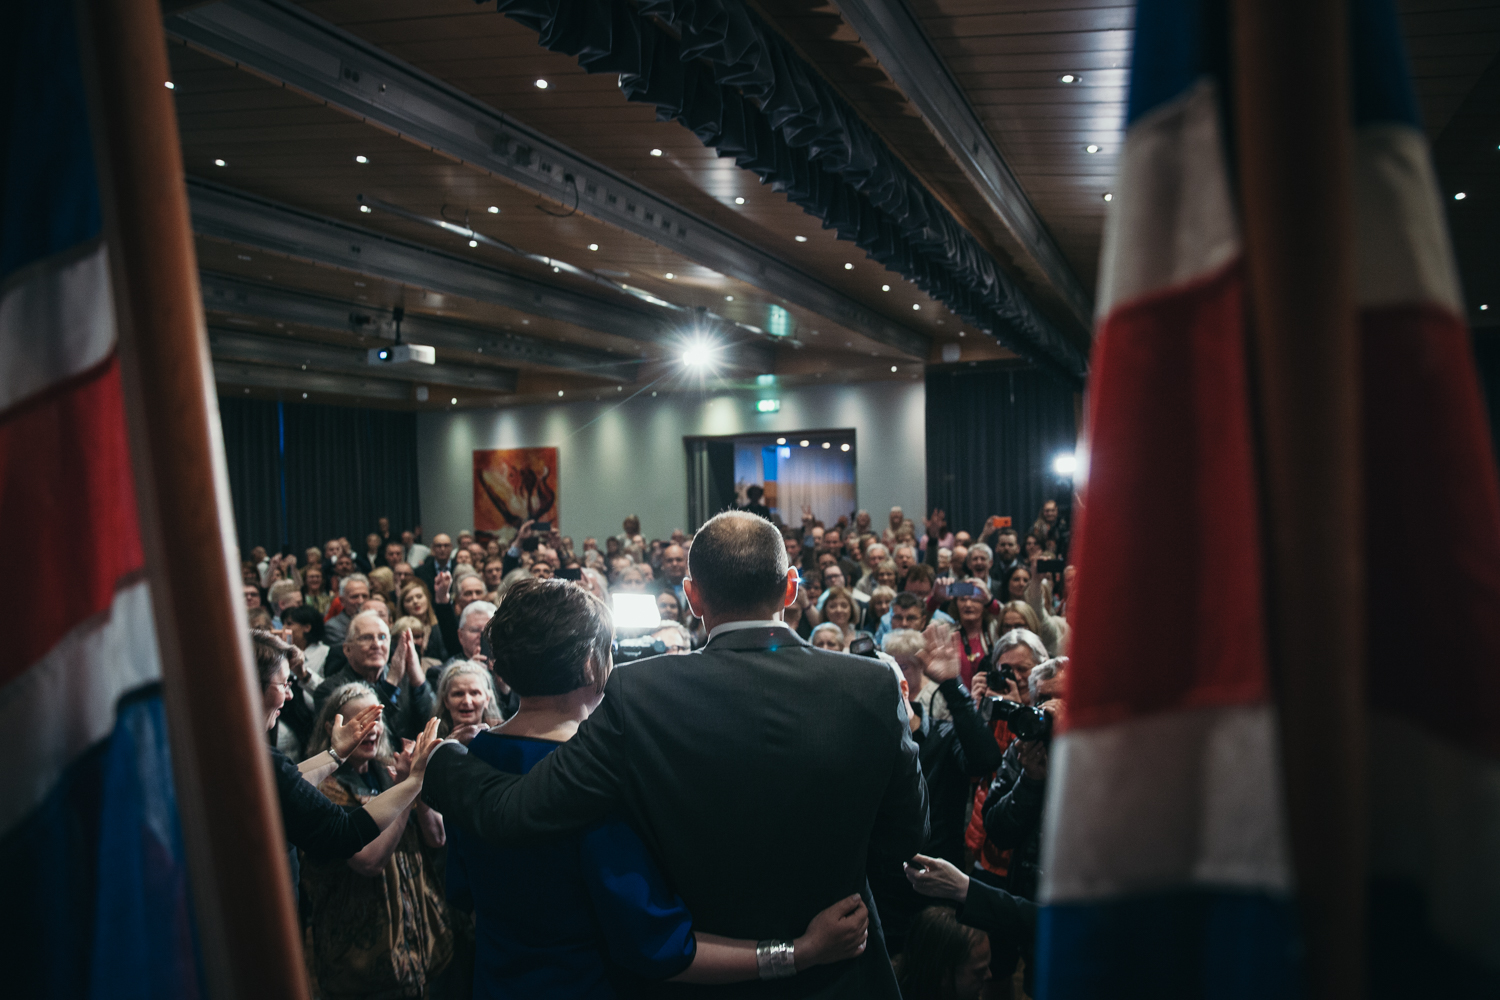 Guðni and his wife Eliza Reid entering his election party at Grand Hótel Reykjavík